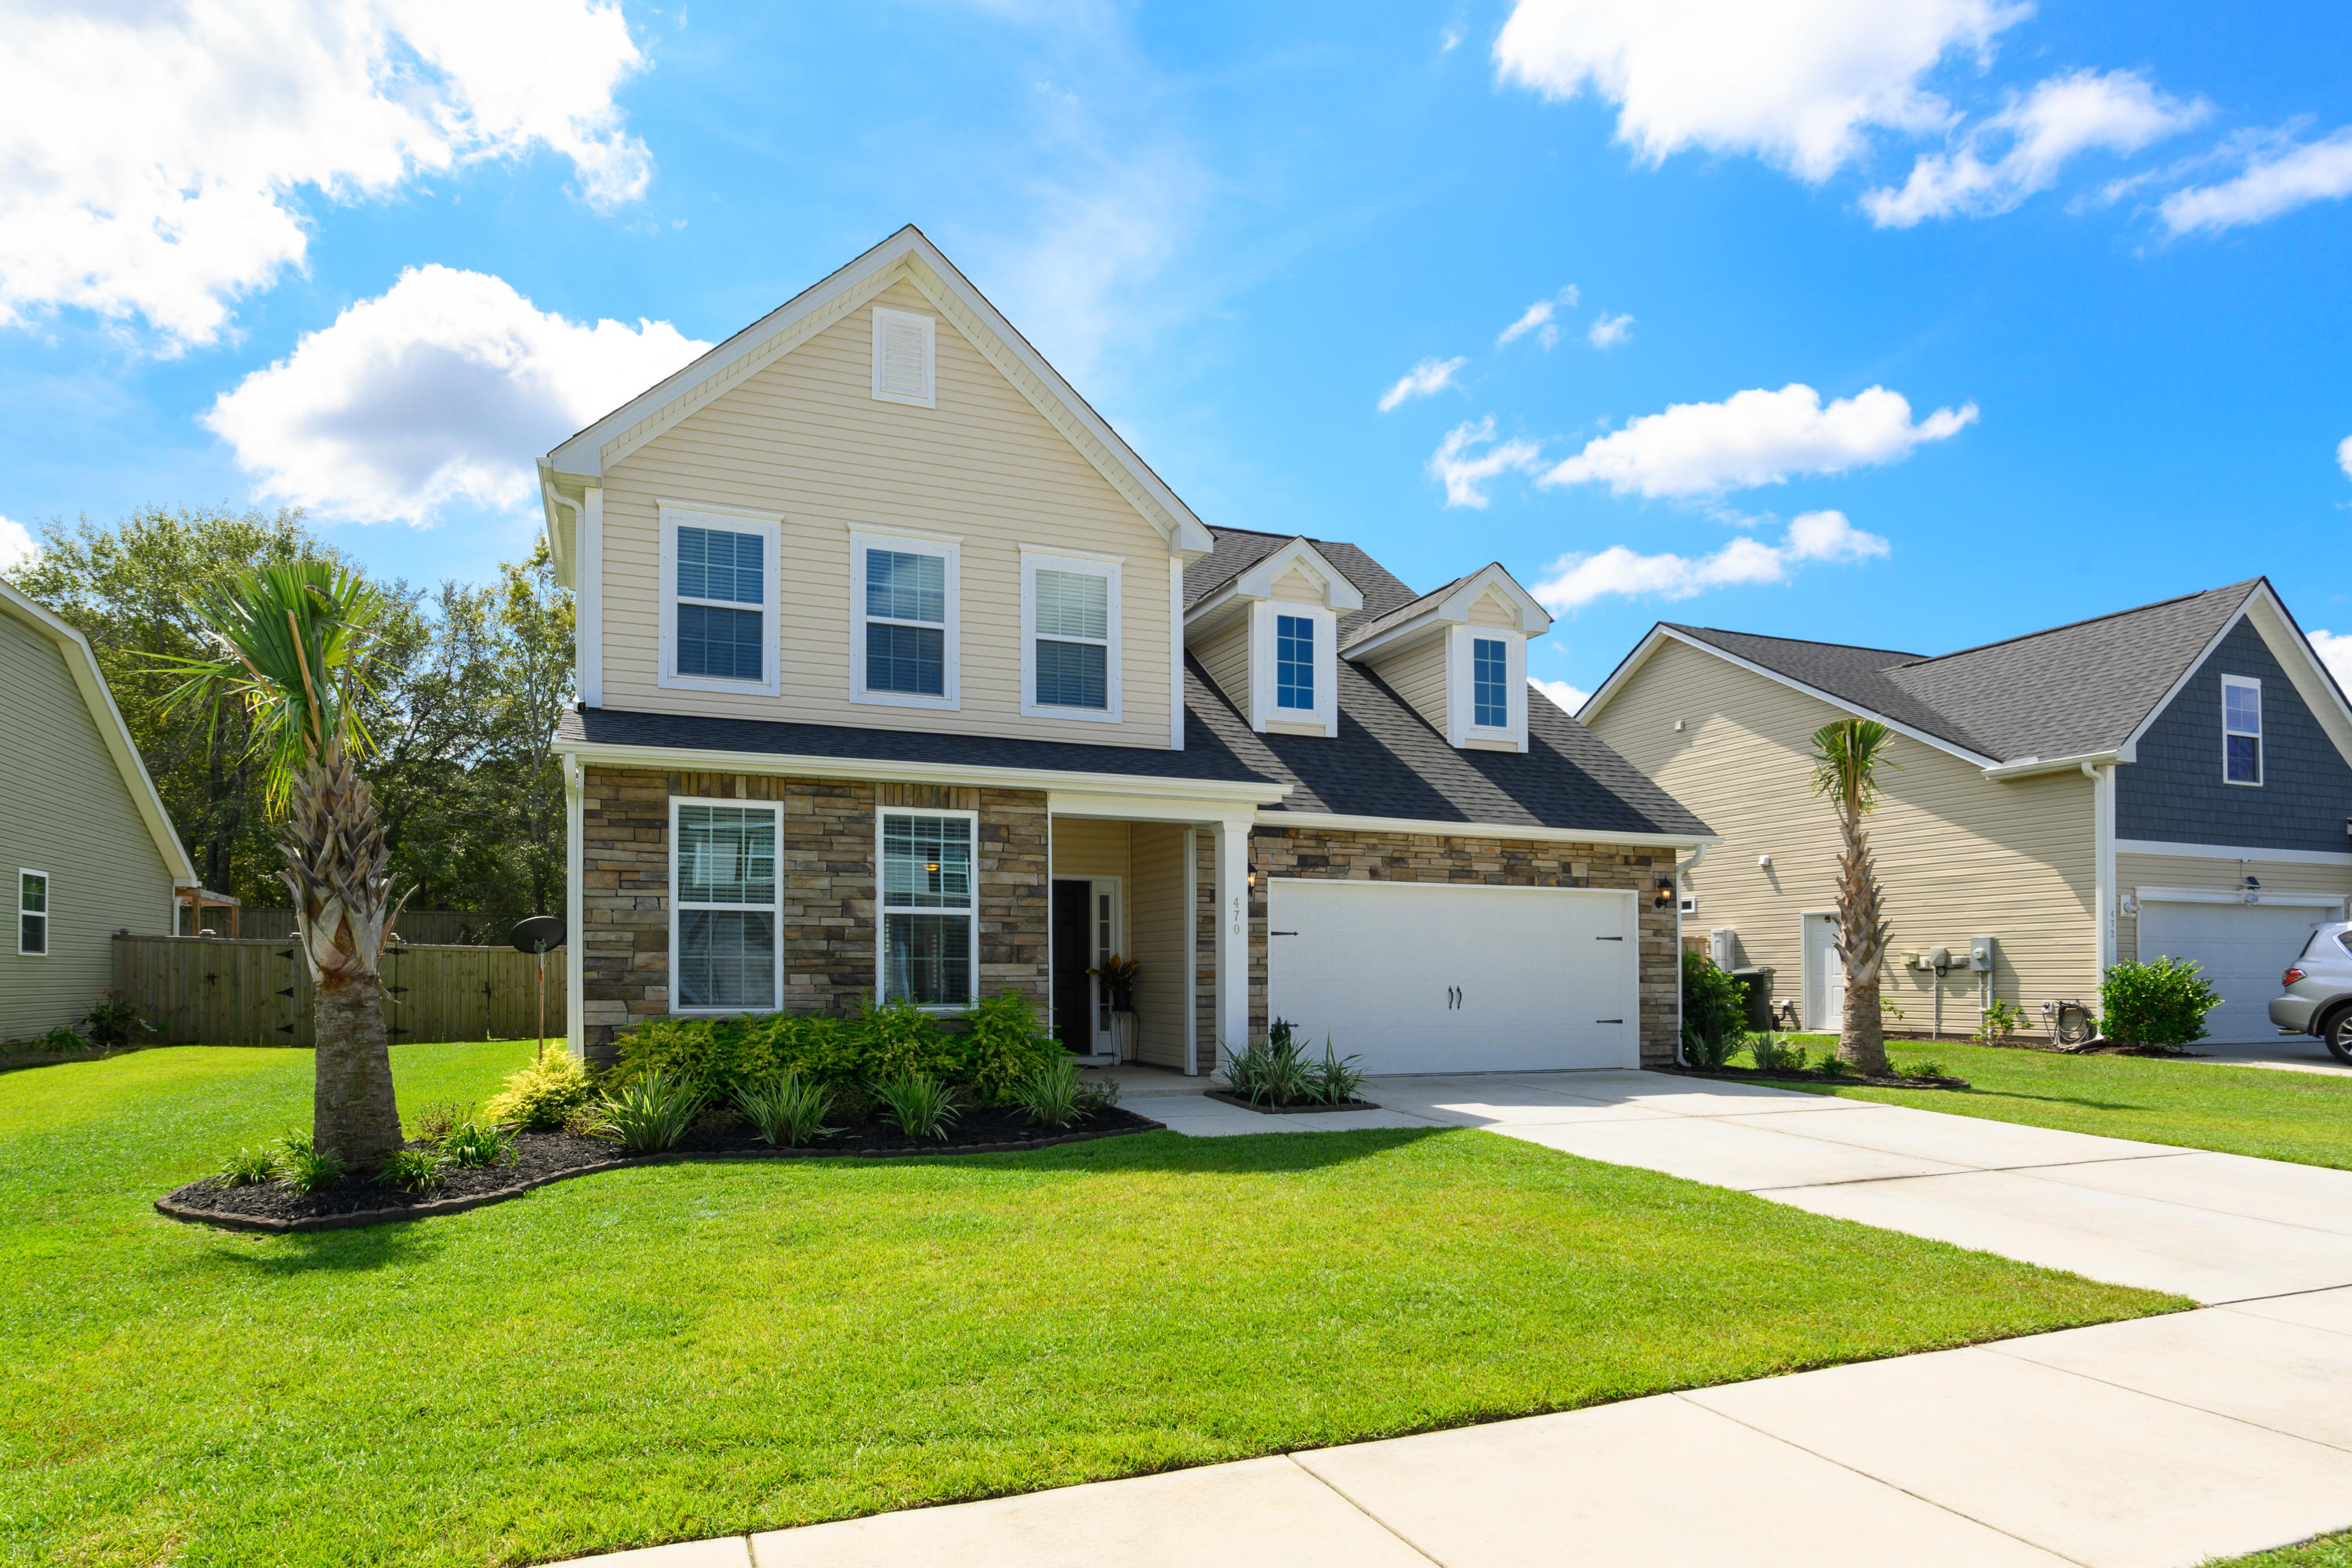 470 Gianna Lane Goose Creek, SC 29445